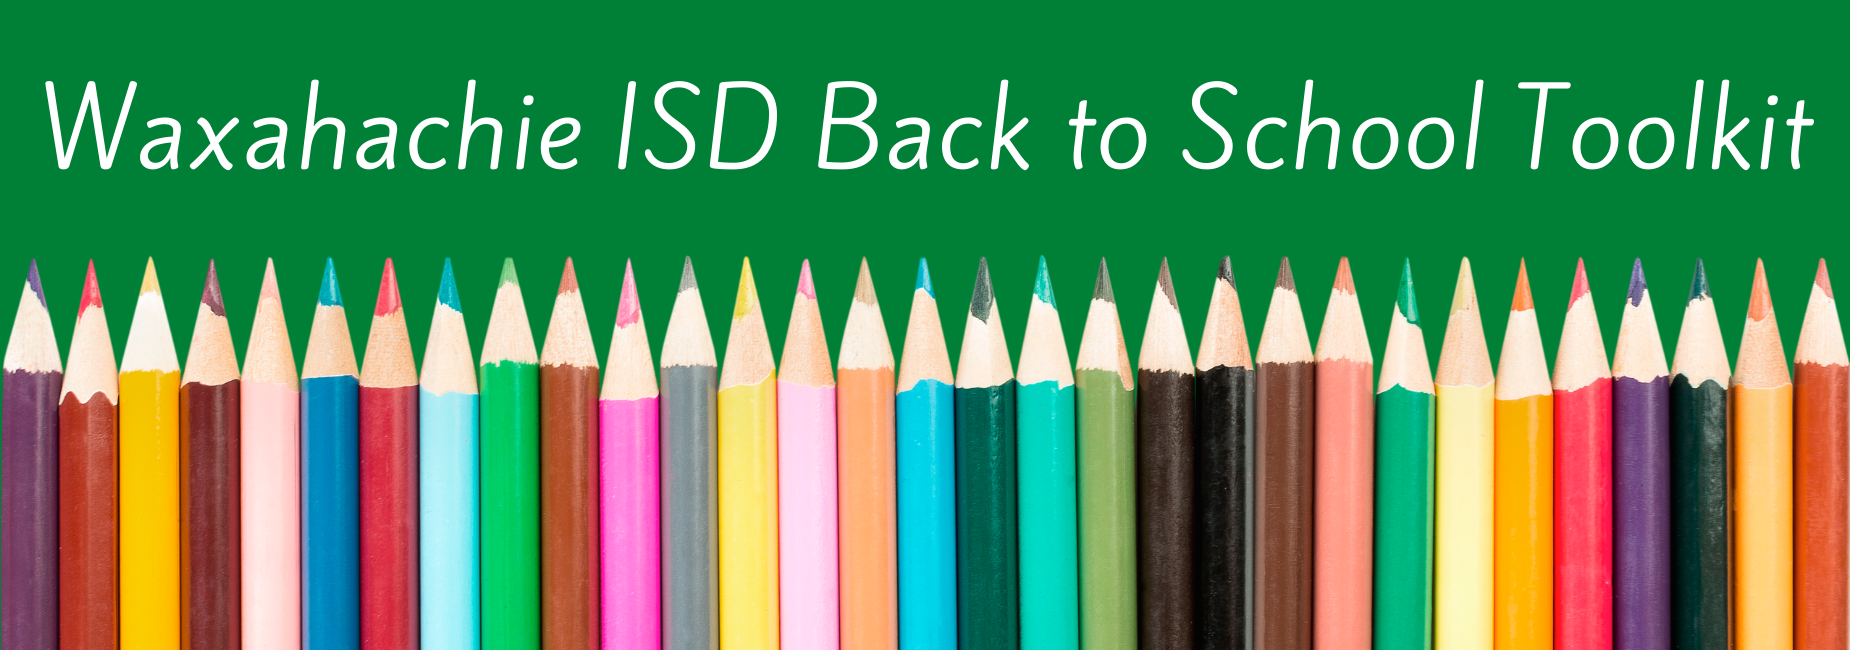 graphic with colored pencils reads Waxahachie ISD back to school toolkit